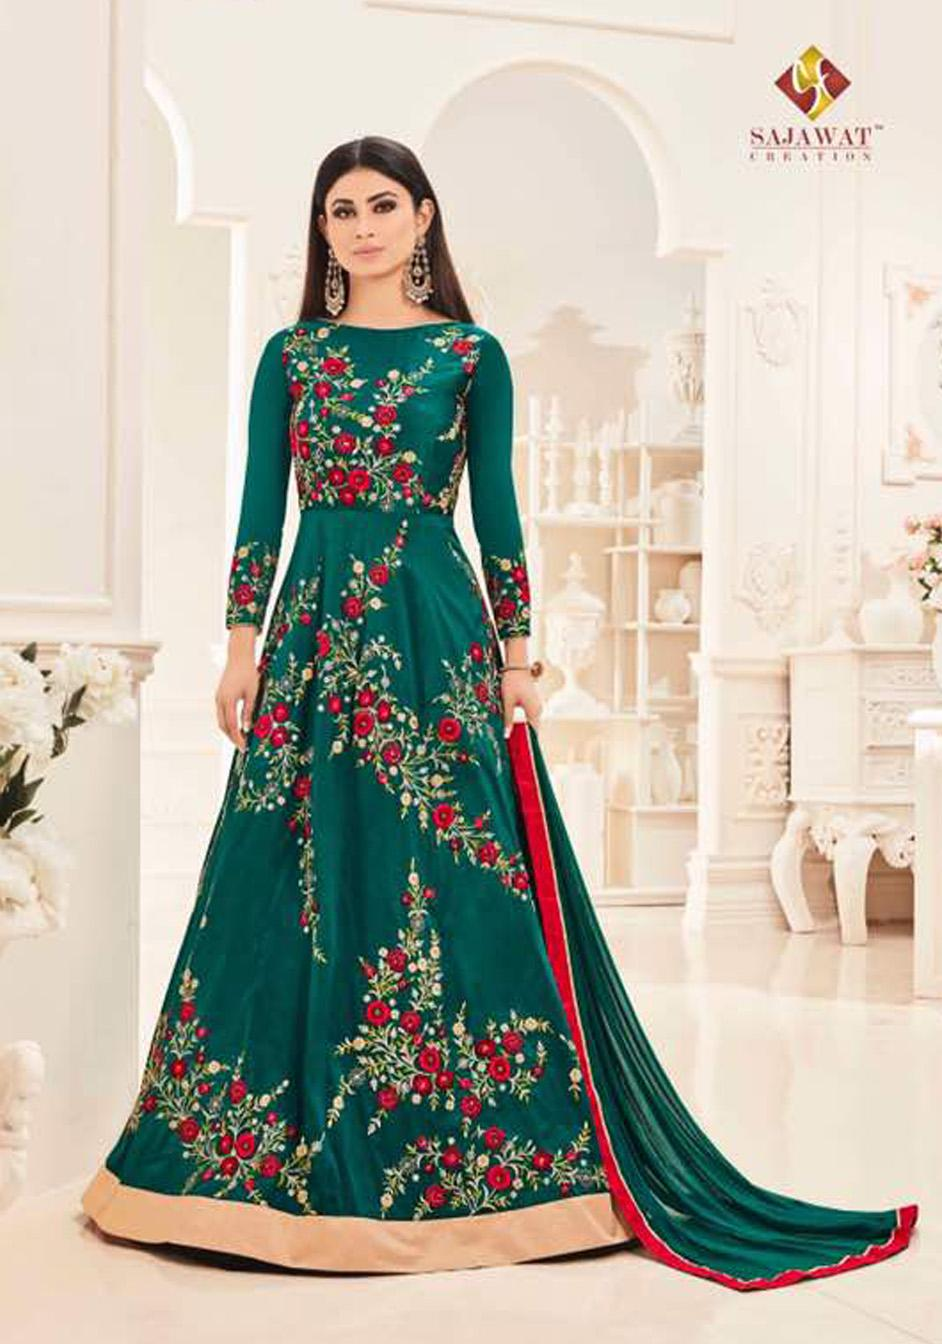 8845d2aeb5 Buy Indian Party Wear at Best Prices Online in Bangladesh - daraz.com.bd